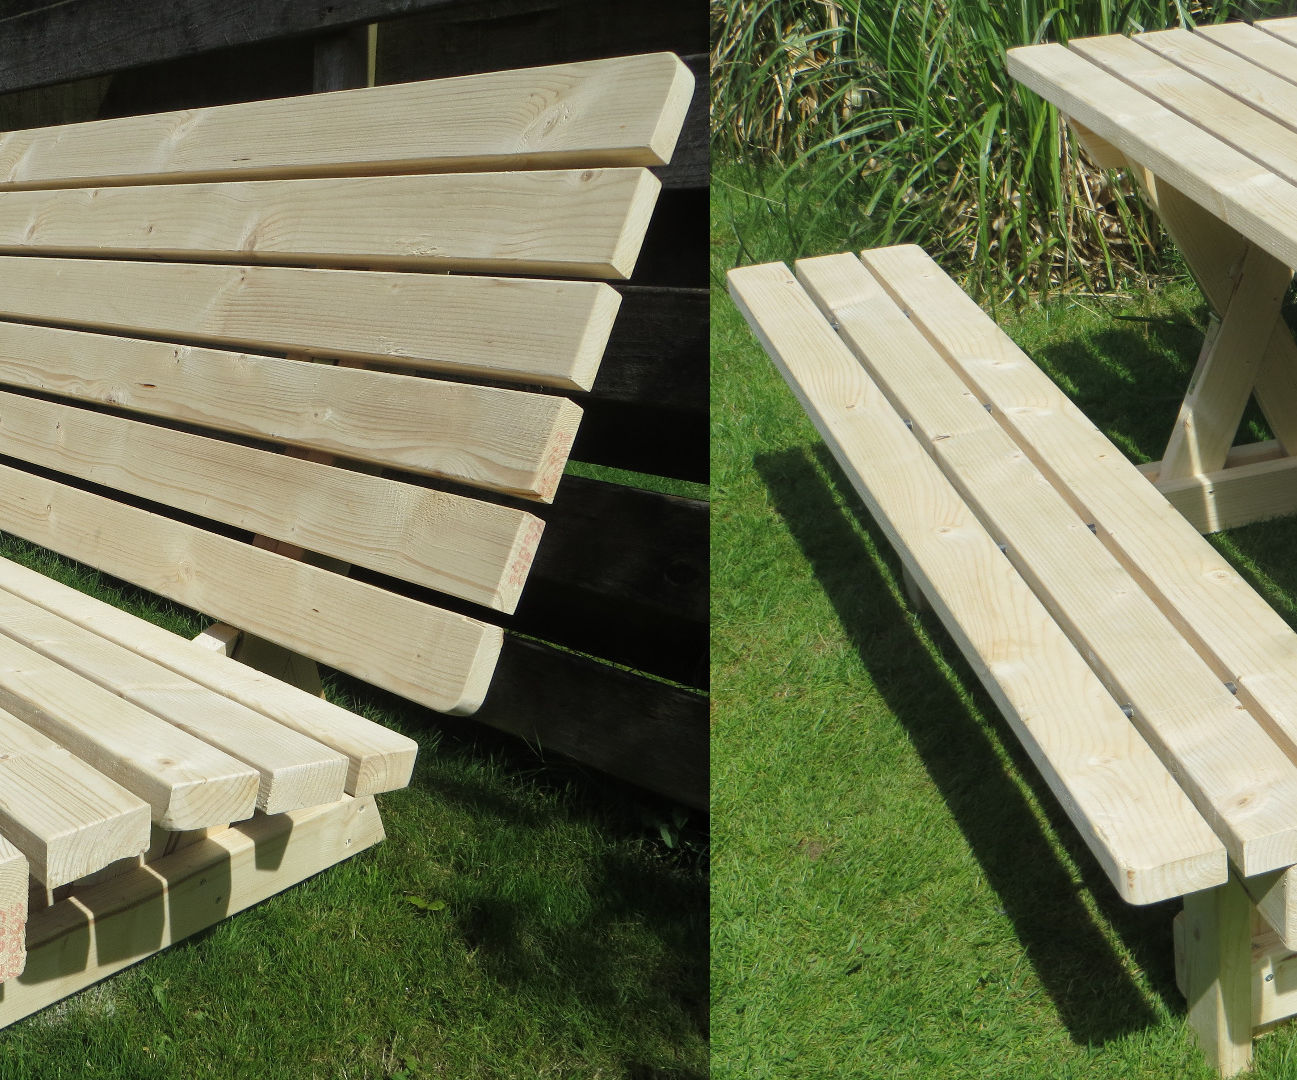 Picnic table and bench - 2 in 1